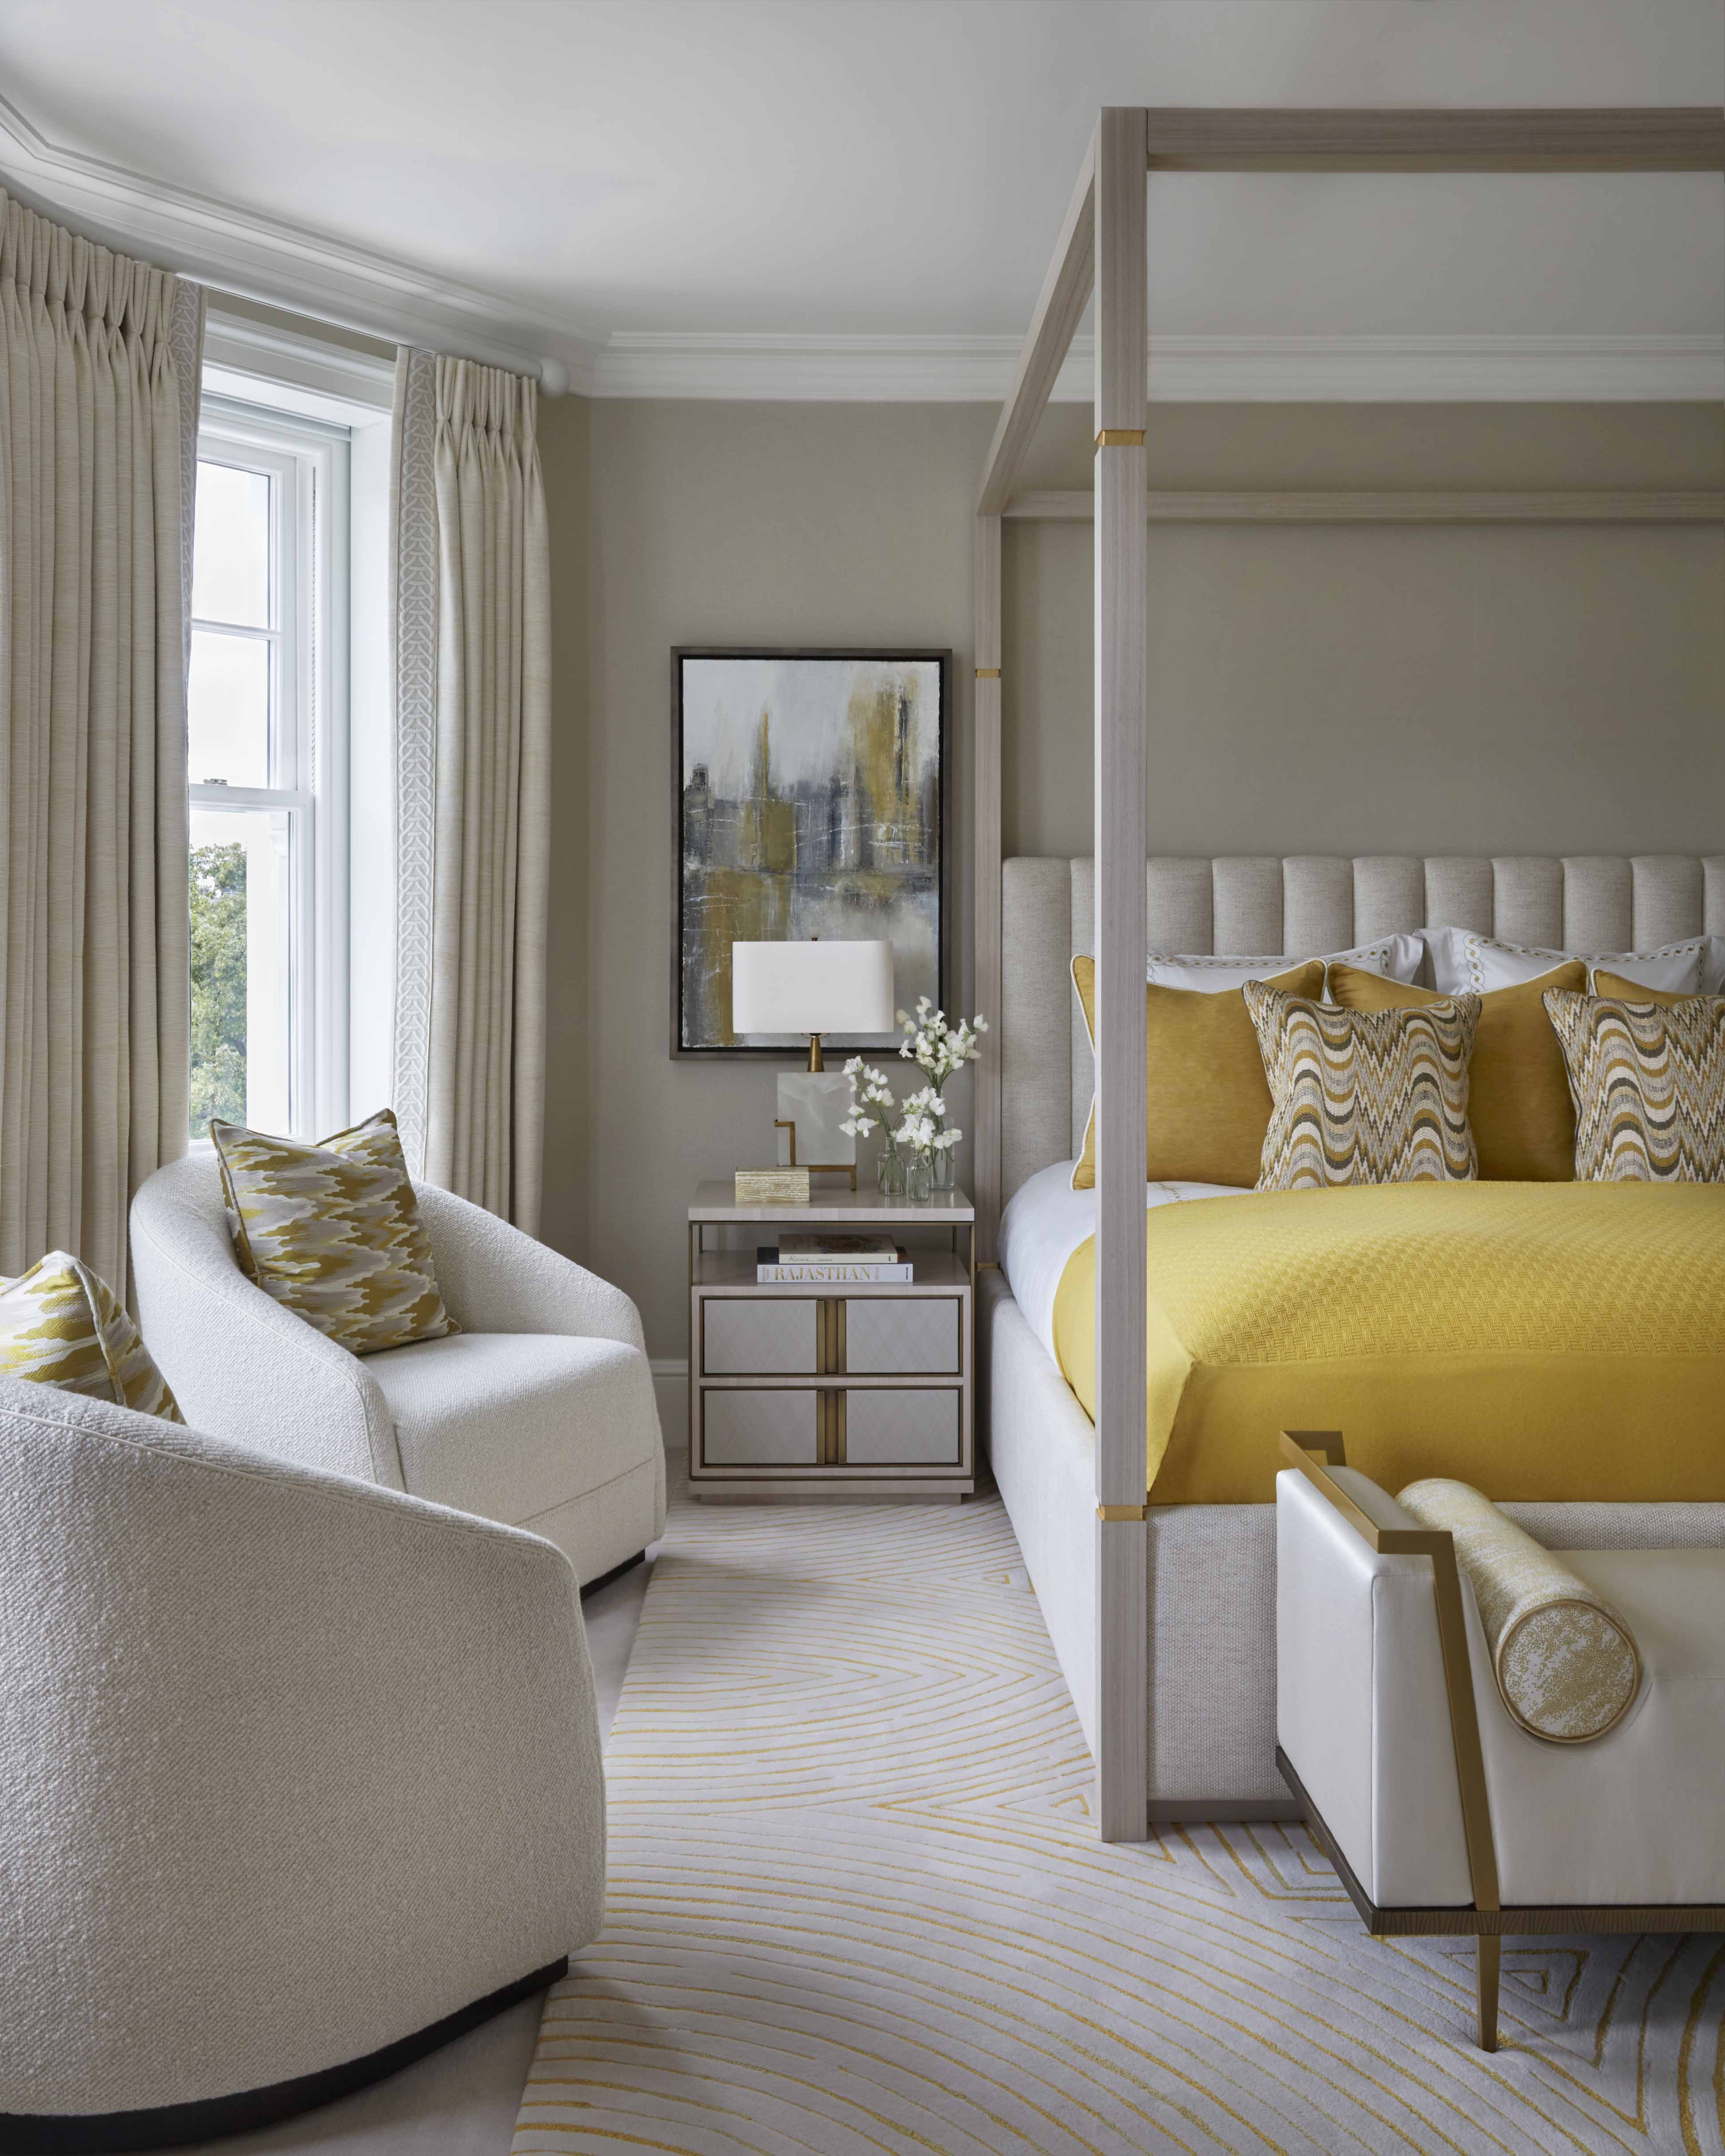 How to design a guest bedroom